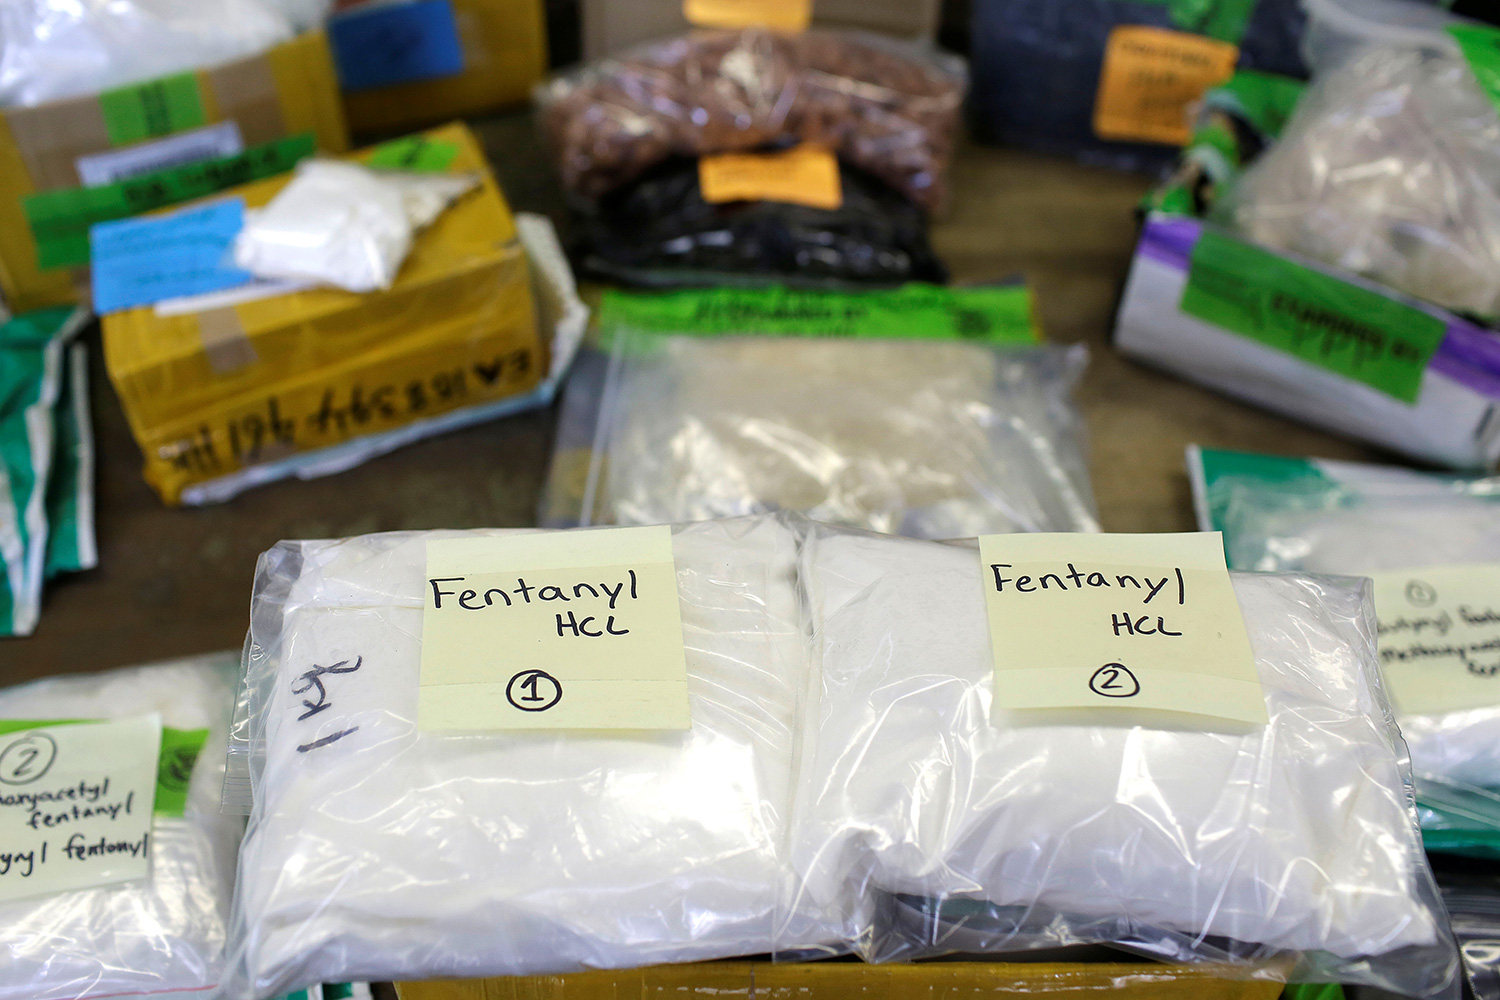 Picture shows several large clear plastic bags labeled fentanyl stacked on a table.